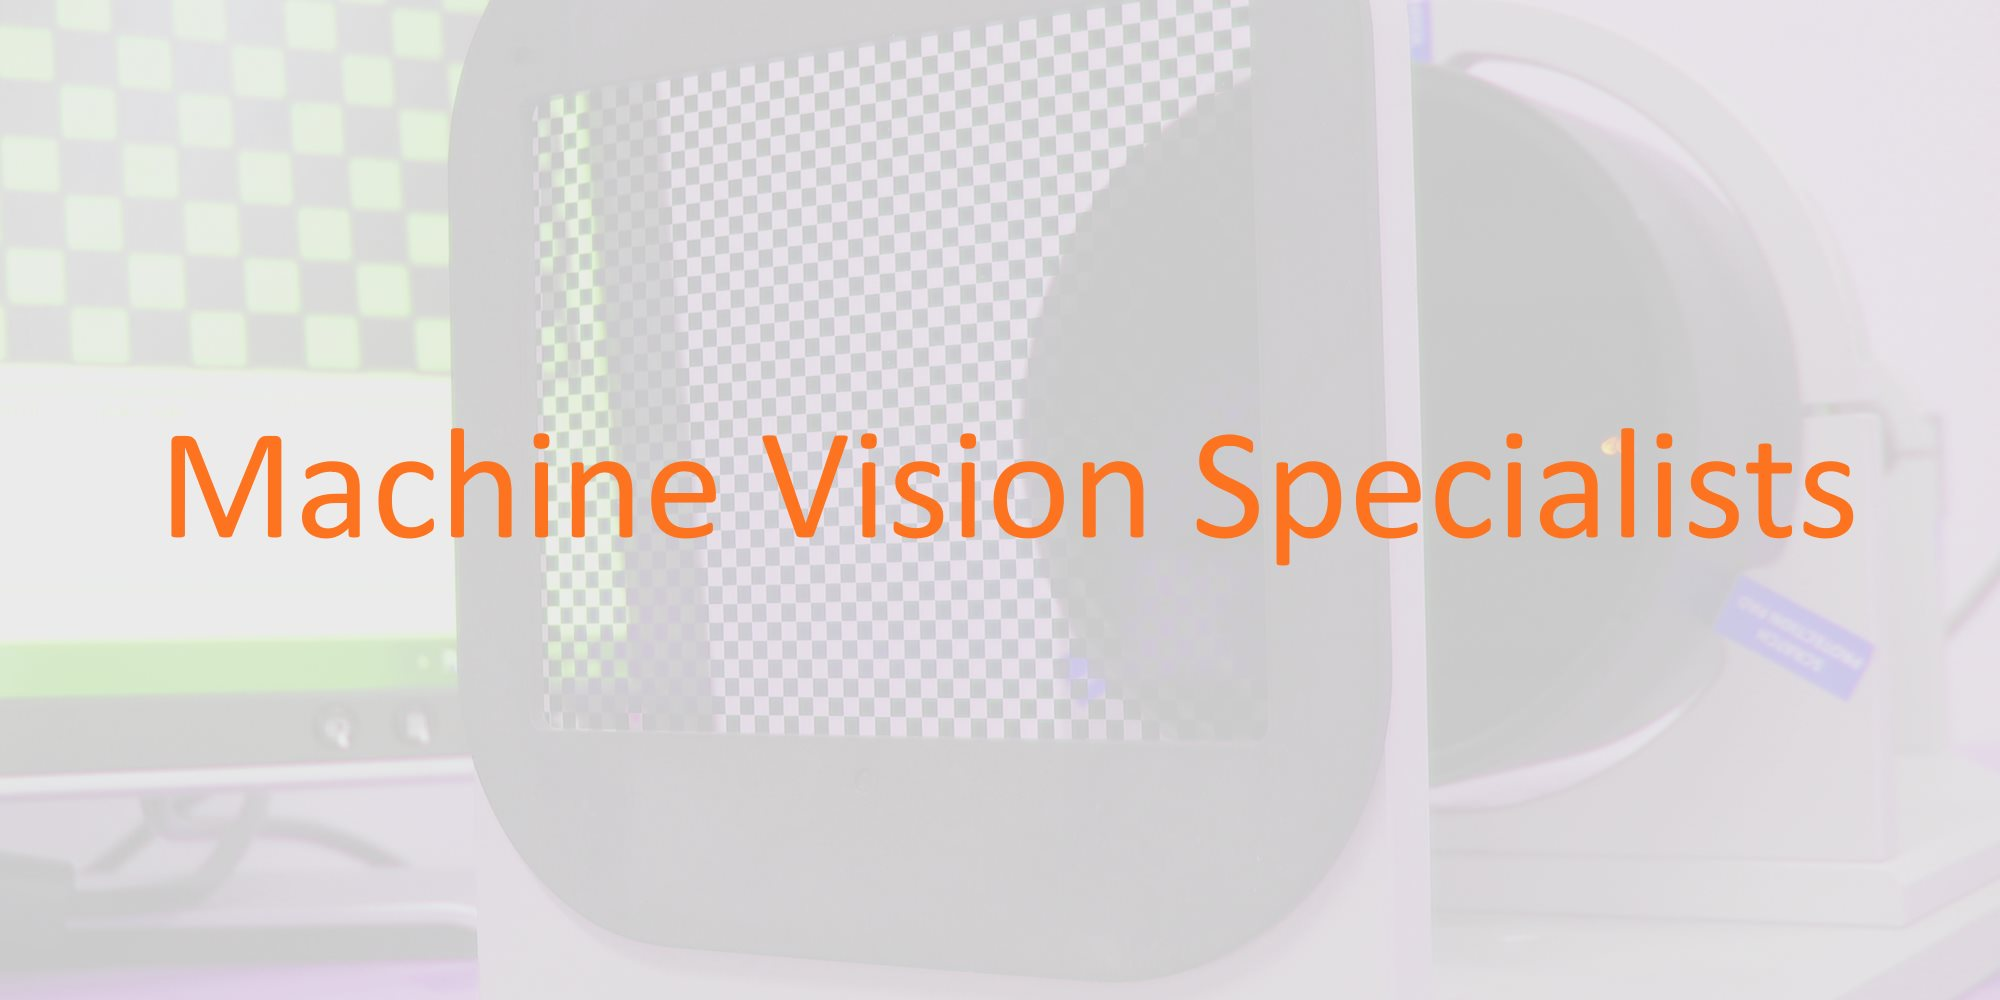 Machine vision specialists